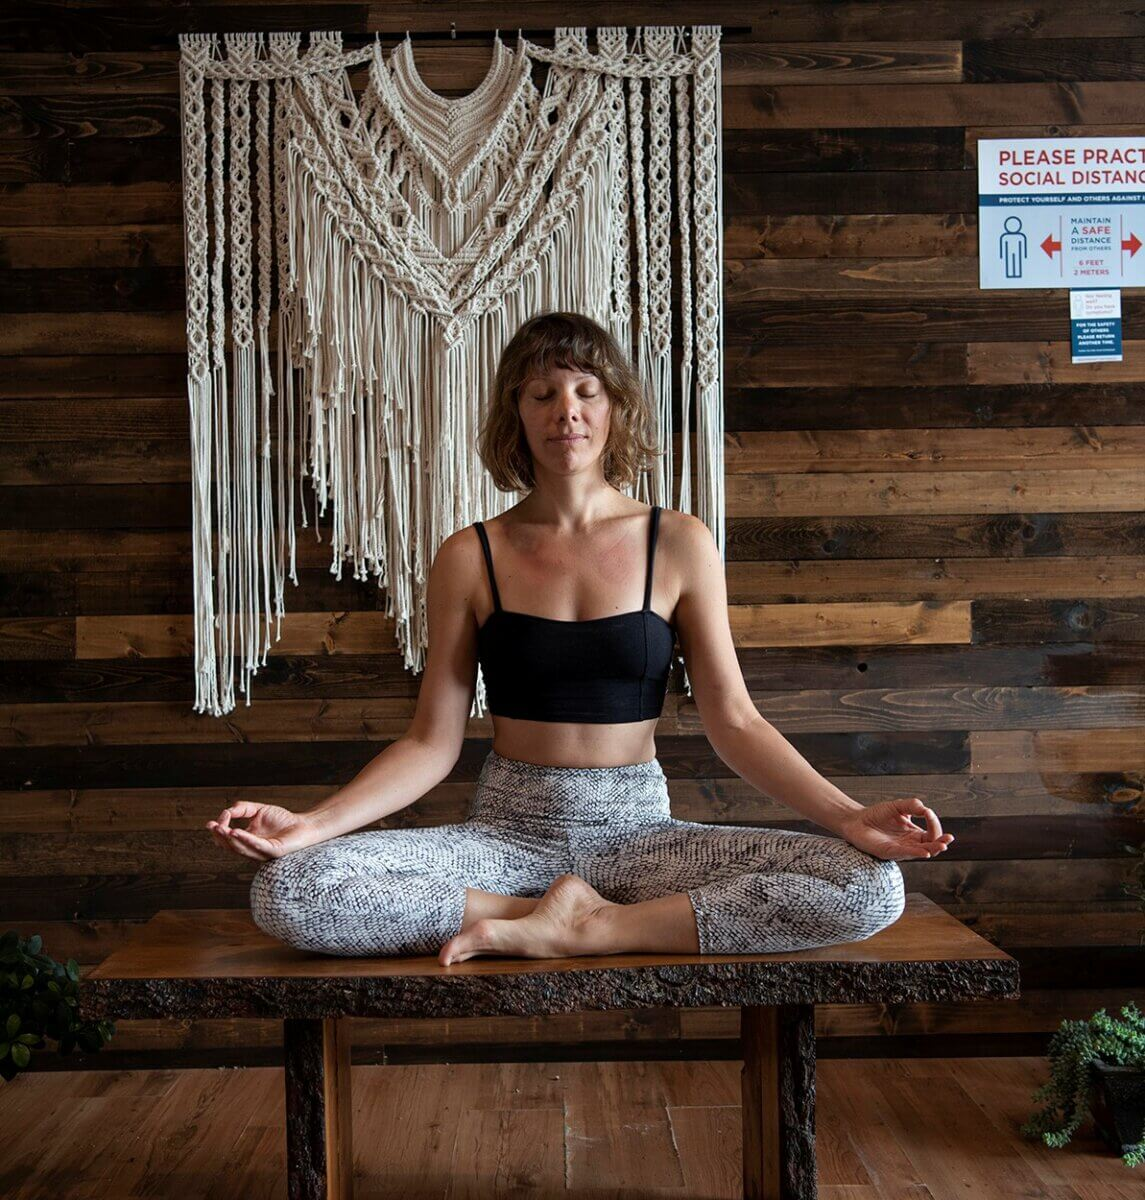 A woman meditating on a wooden bench with a macrame hanging behind her